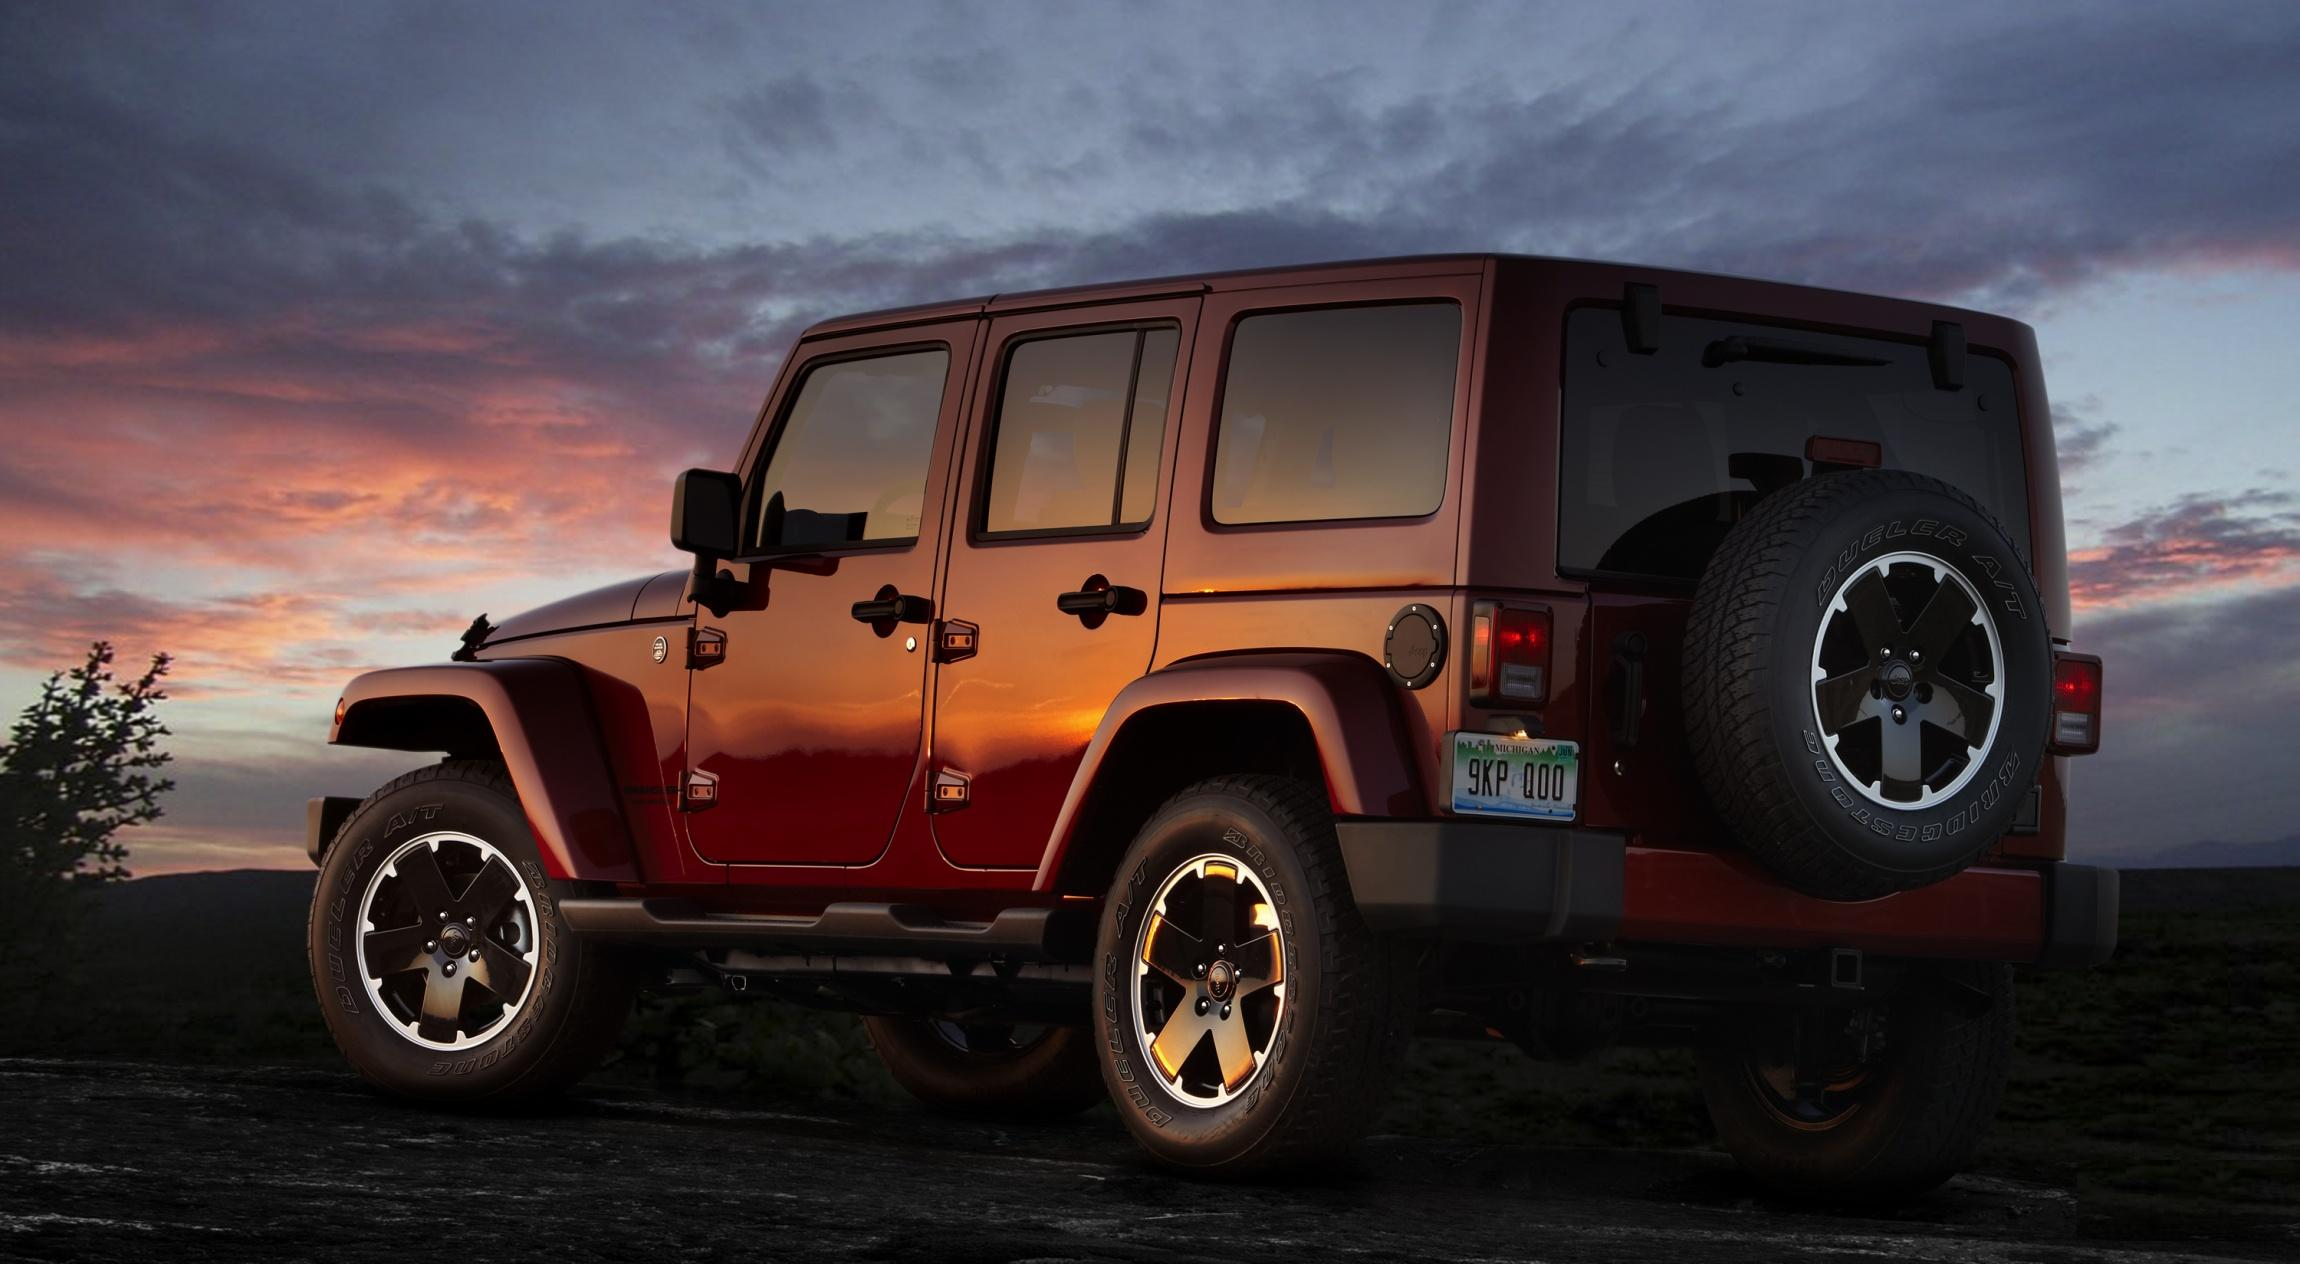 2012 Jeep Wrangler Unlimited  2300 x 1264  Download  Close